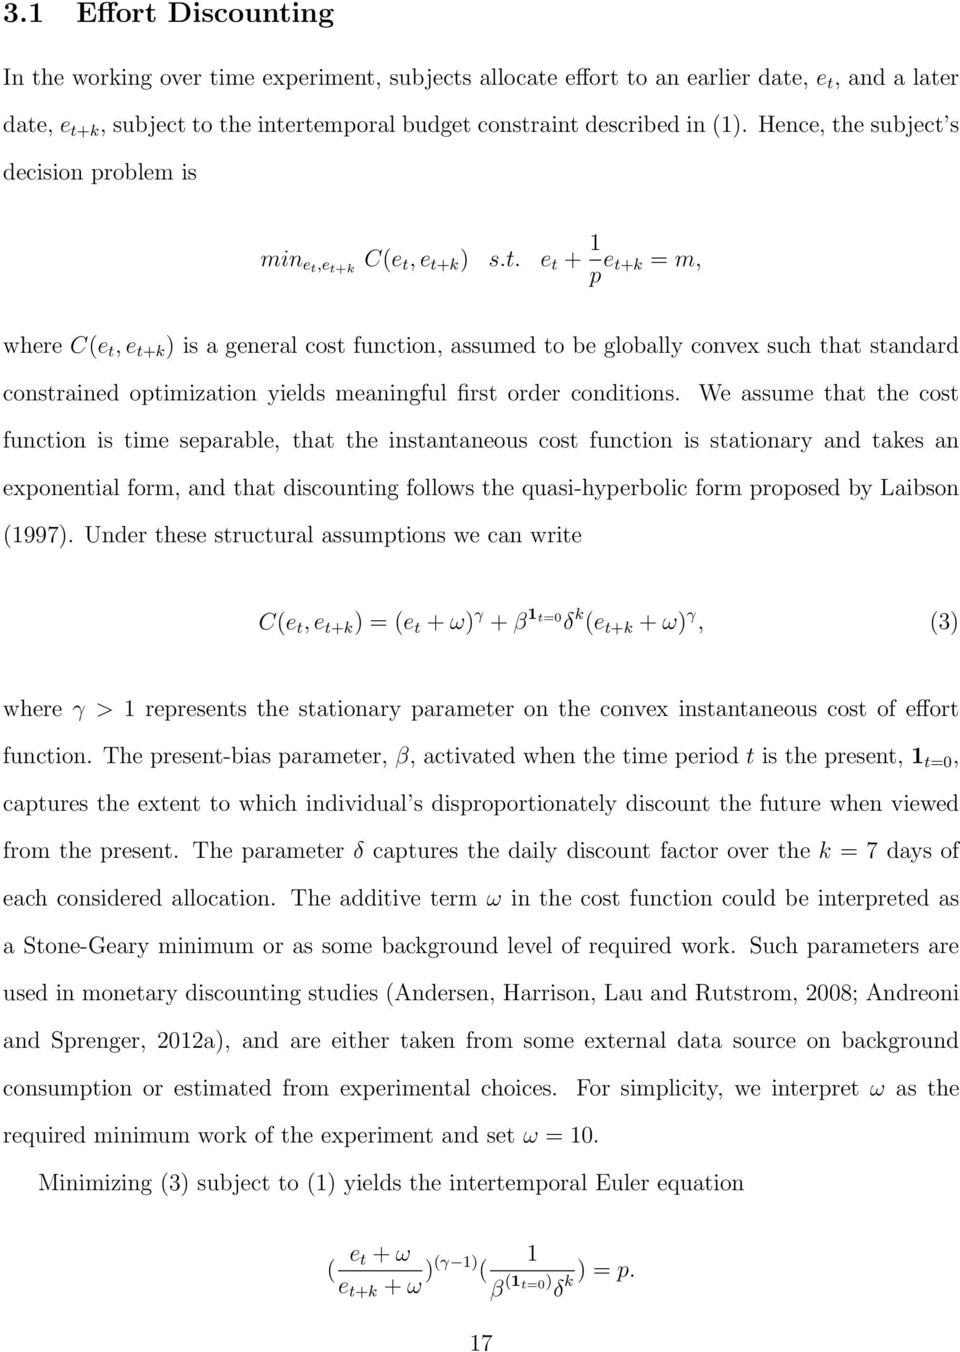 We assume that the cost function is time separable, that the instantaneous cost function is stationary and takes an exponential form, and that discounting follows the quasi-hyperbolic form proposed